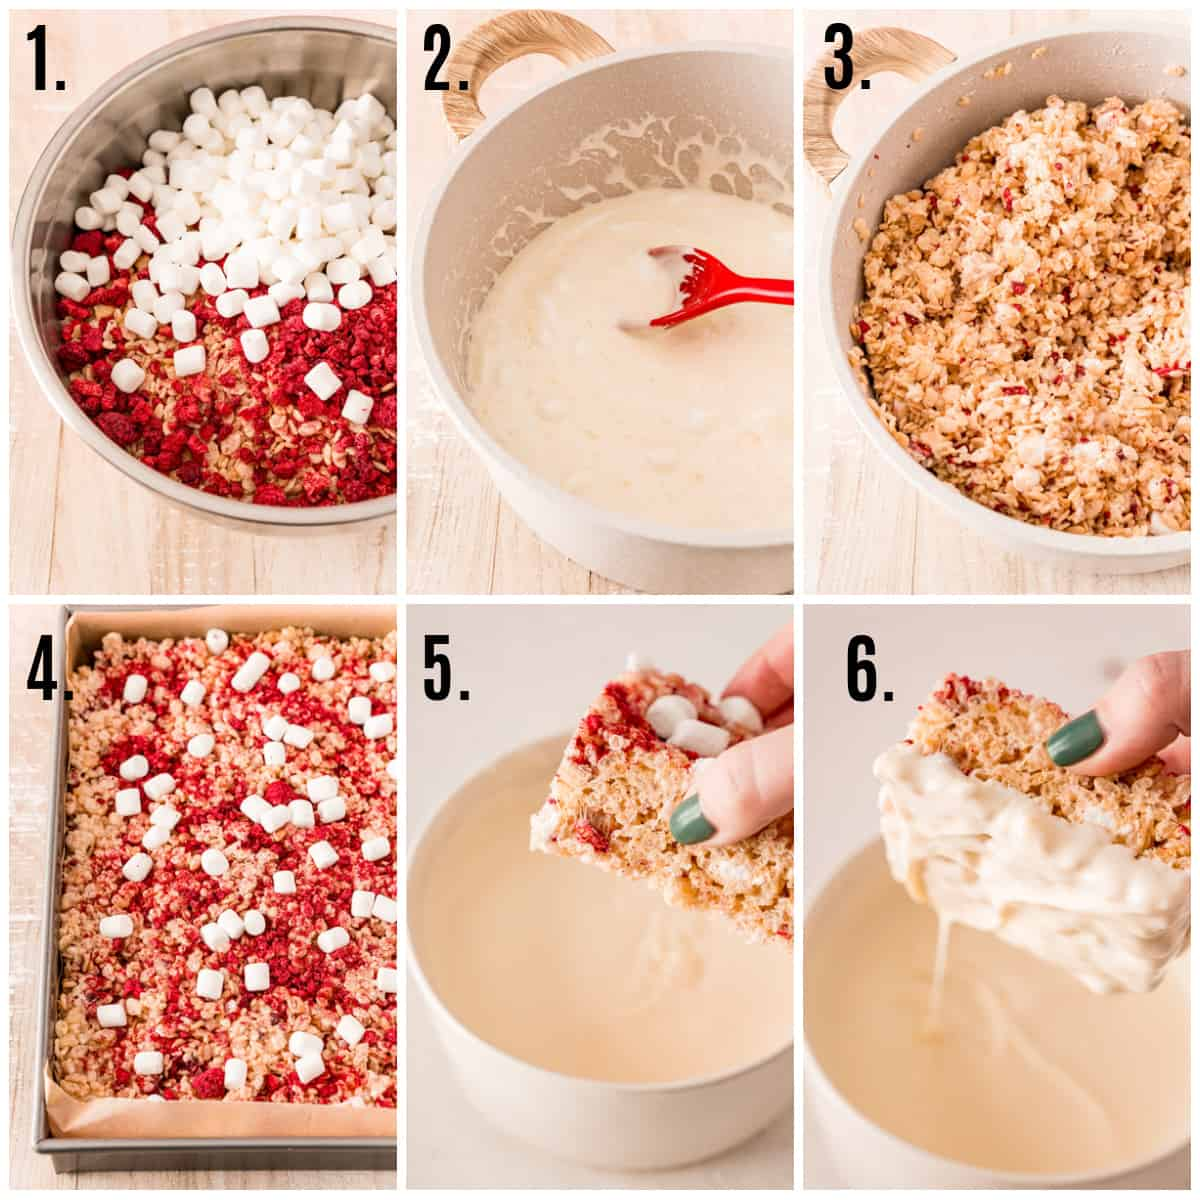 Step by step photos on how to make Valentine's Rice Krispie Treats